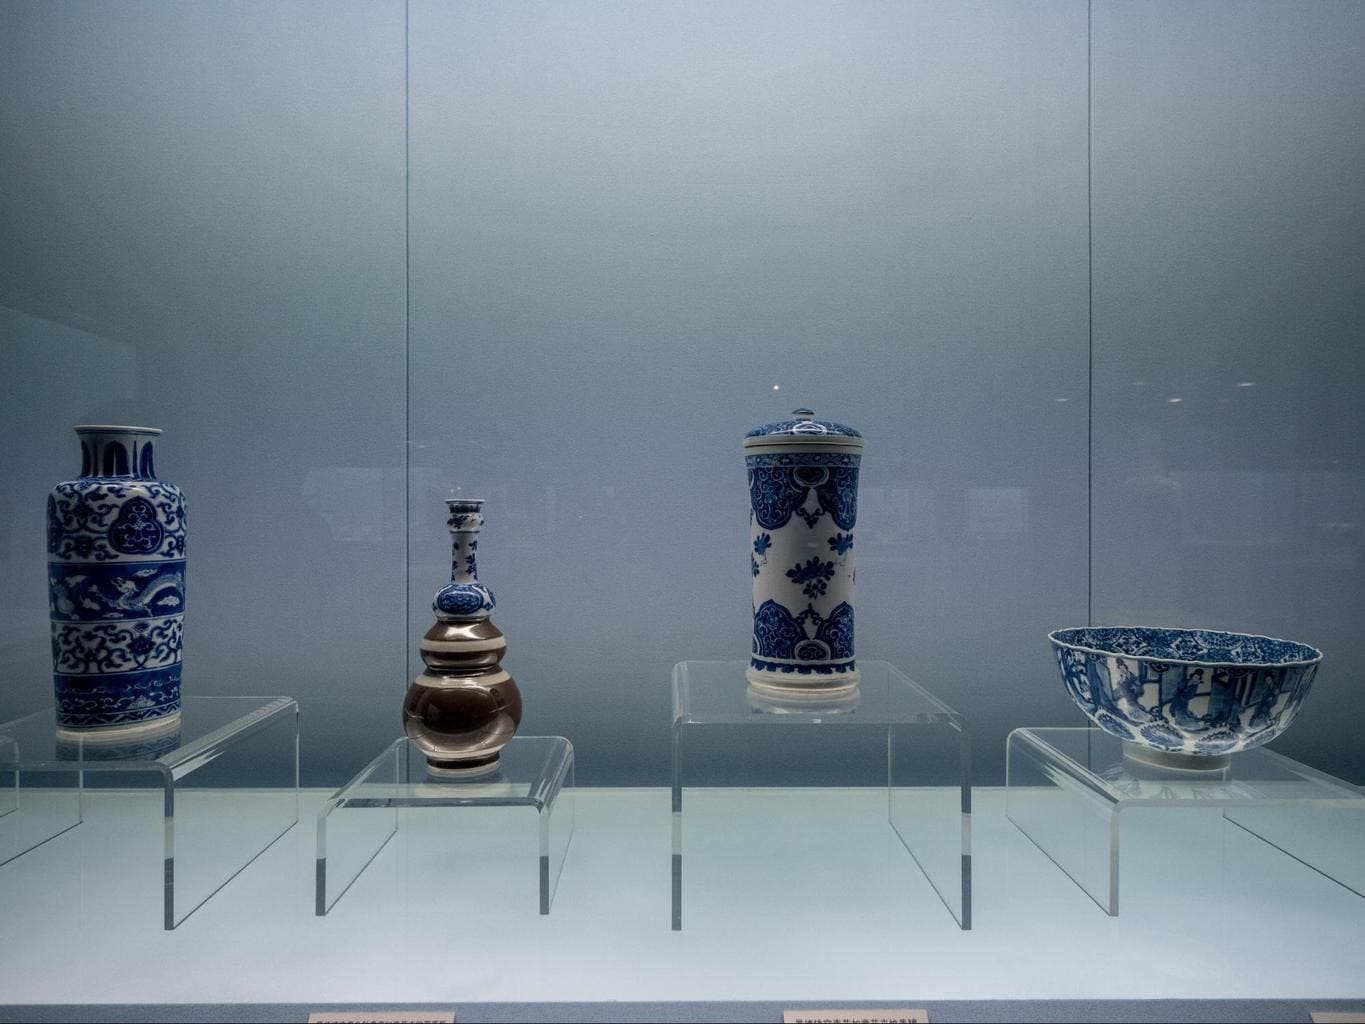 The exhibits at the Shanghai Museum vases